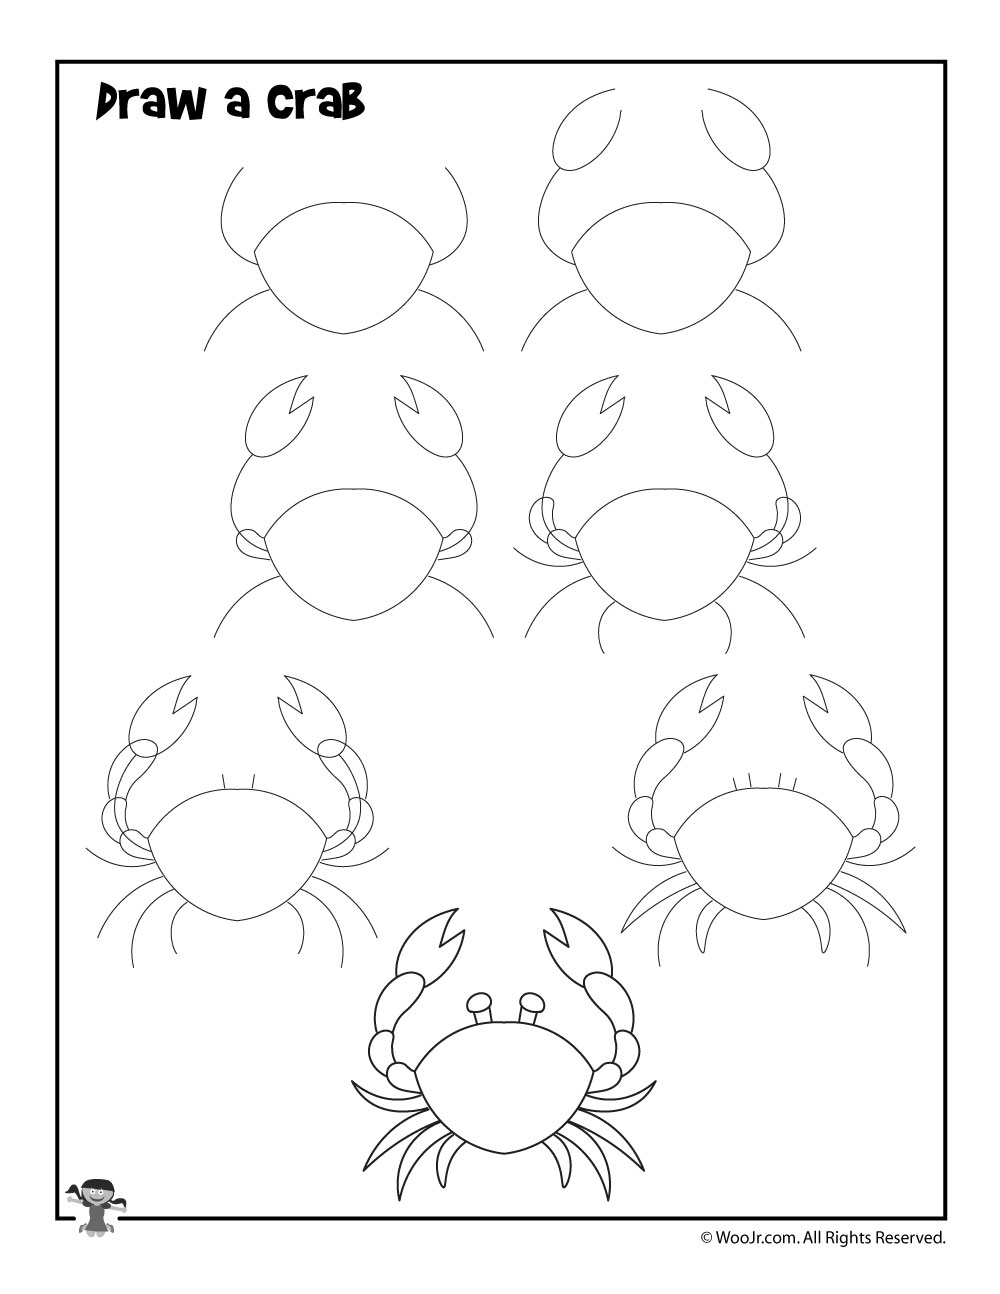 How to Draw a Crab | Woo! Jr. Kids Activities  How to Draw a C...